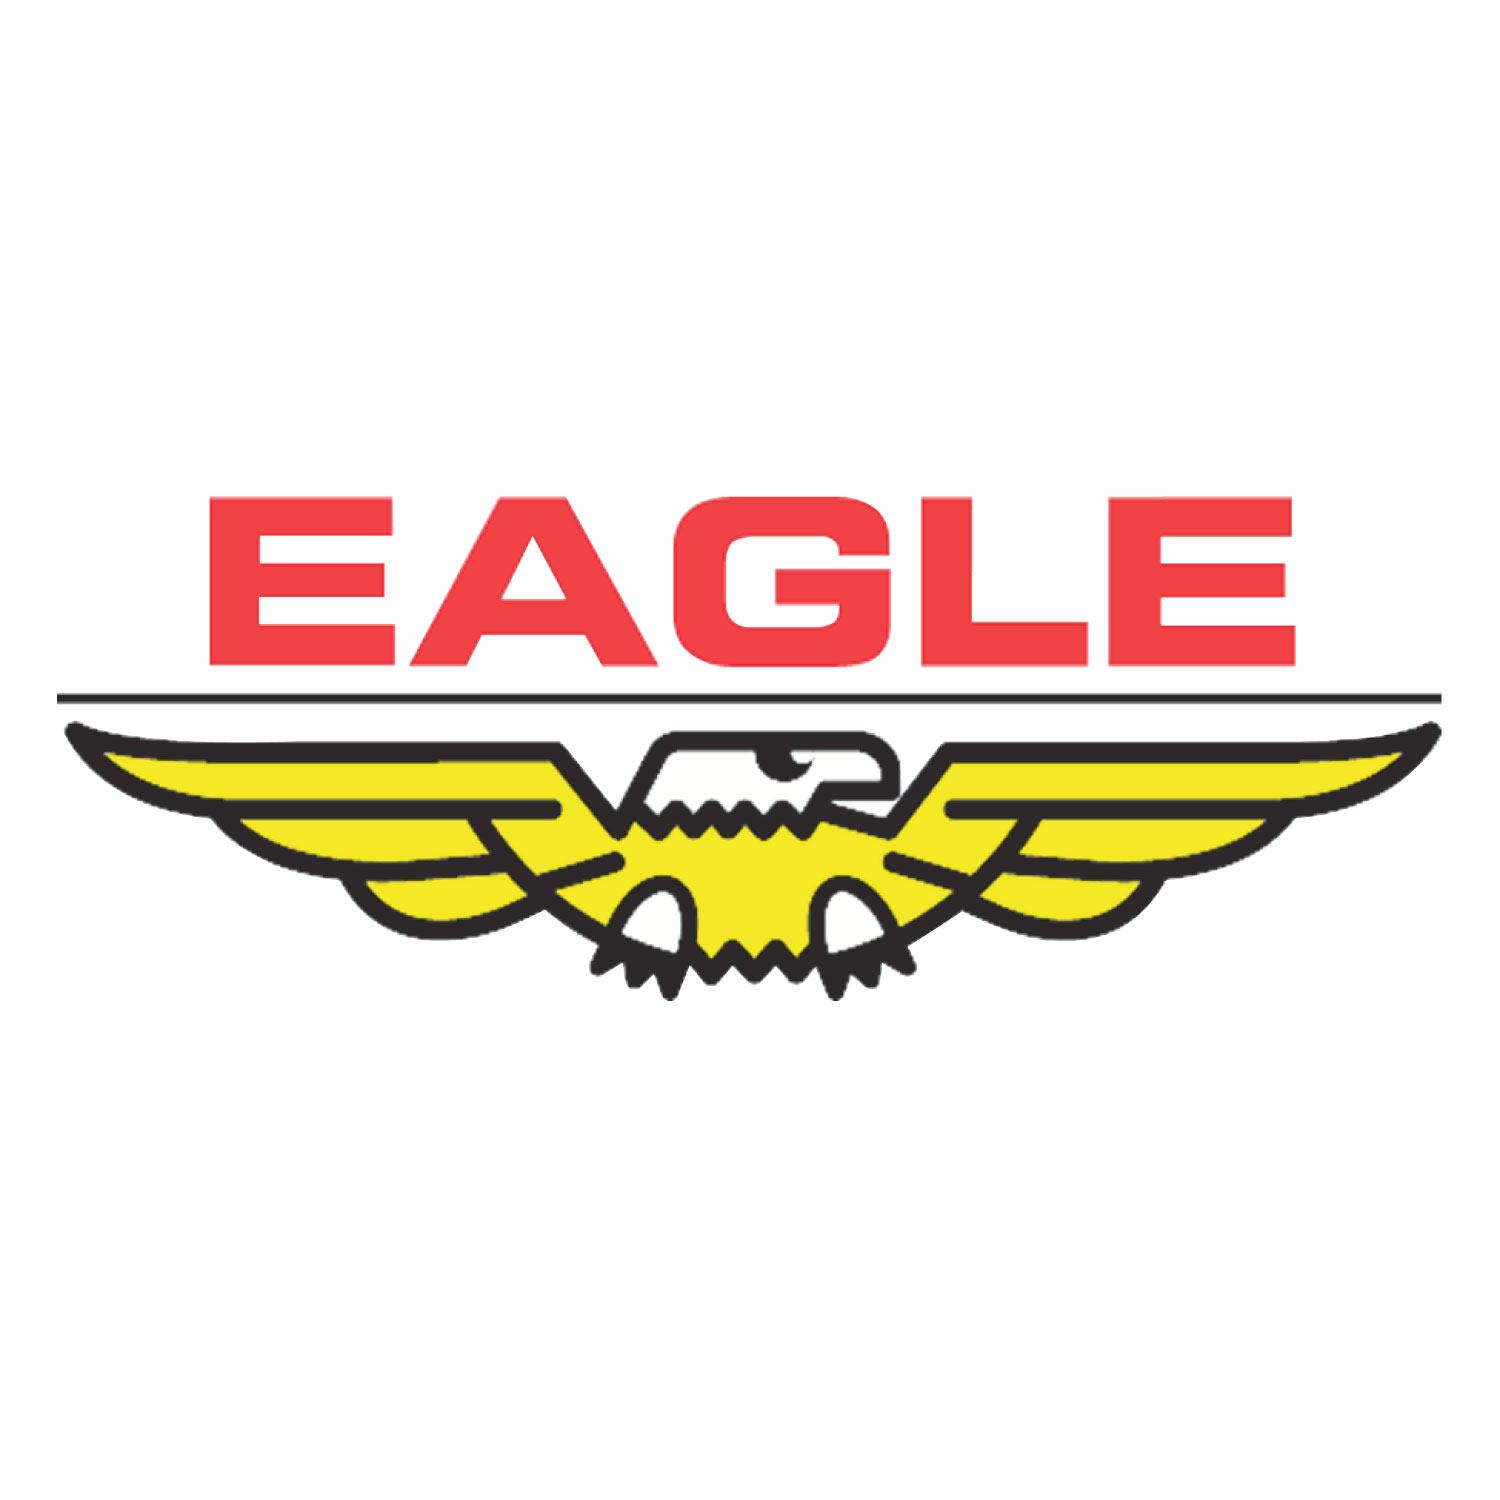 eagle manufacturing Specializing in injection molding, serving the automotive, lawn and garden, sporting goods, firearms, packaging, and general household industries.